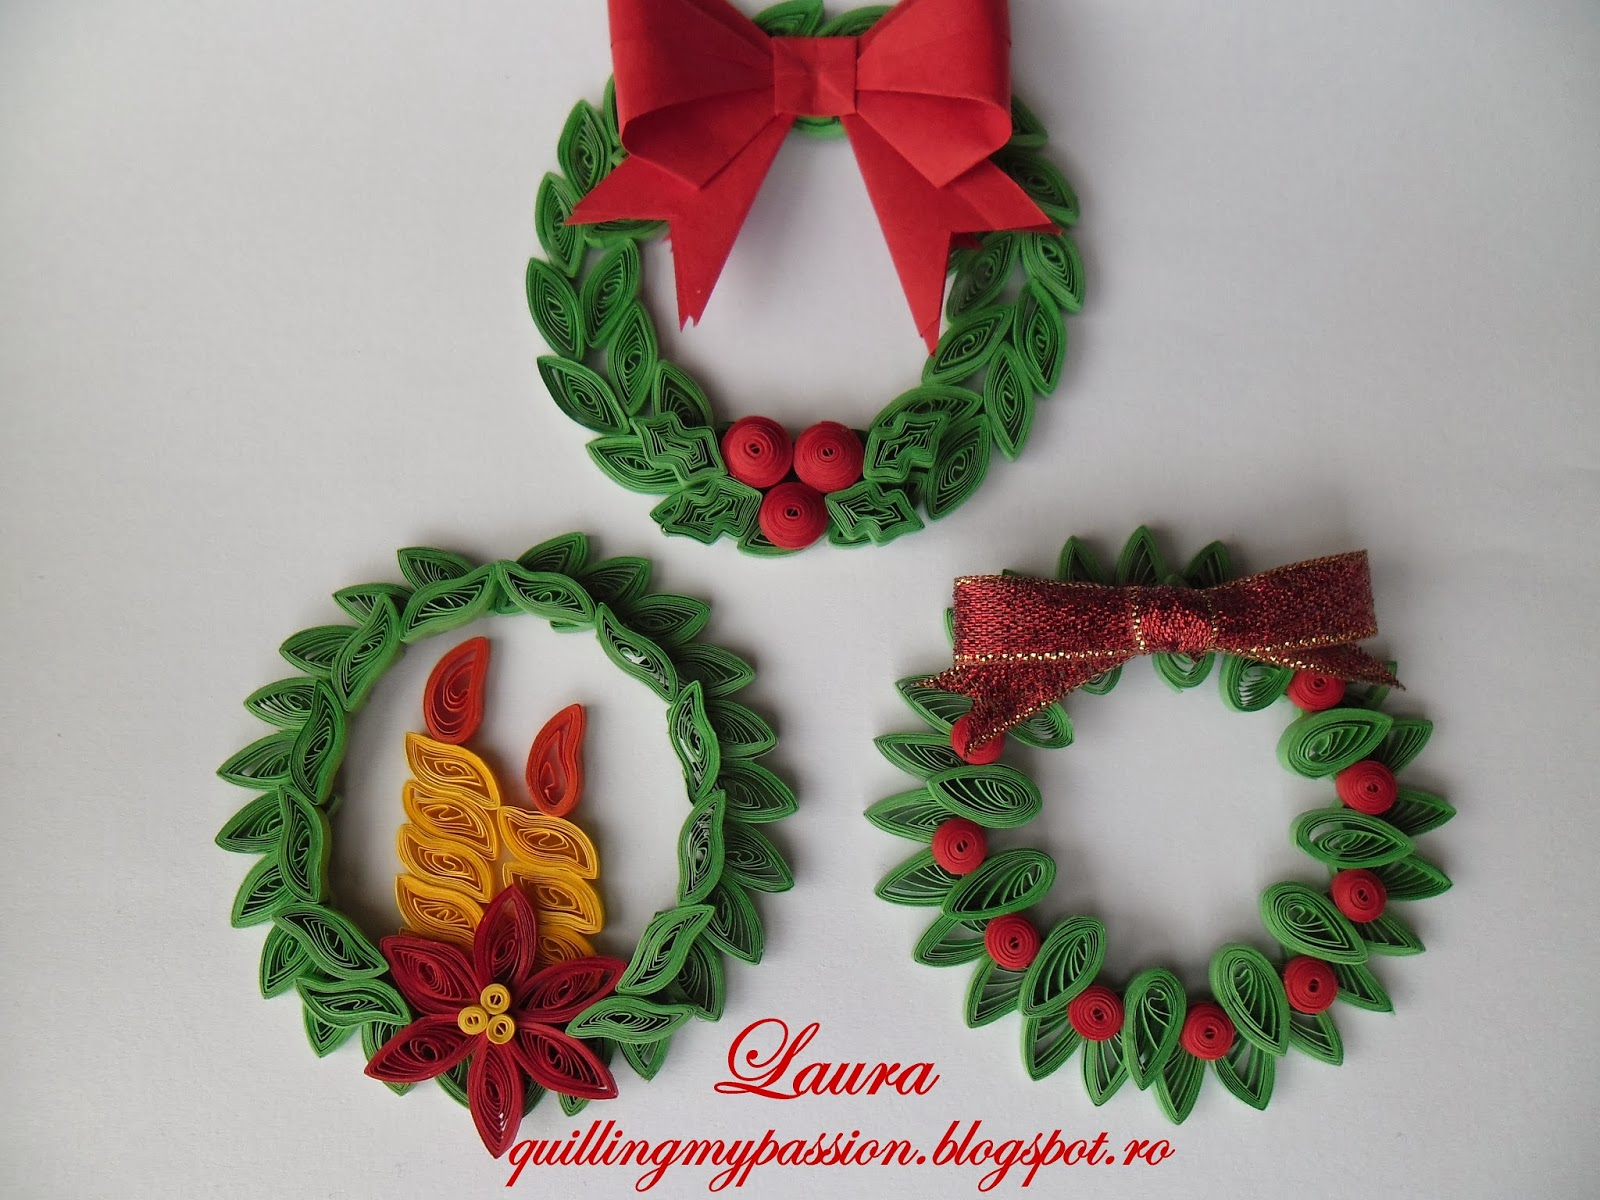 Quilling Boule De Noel Quilling My Passion Quilled Christmas Ornaments